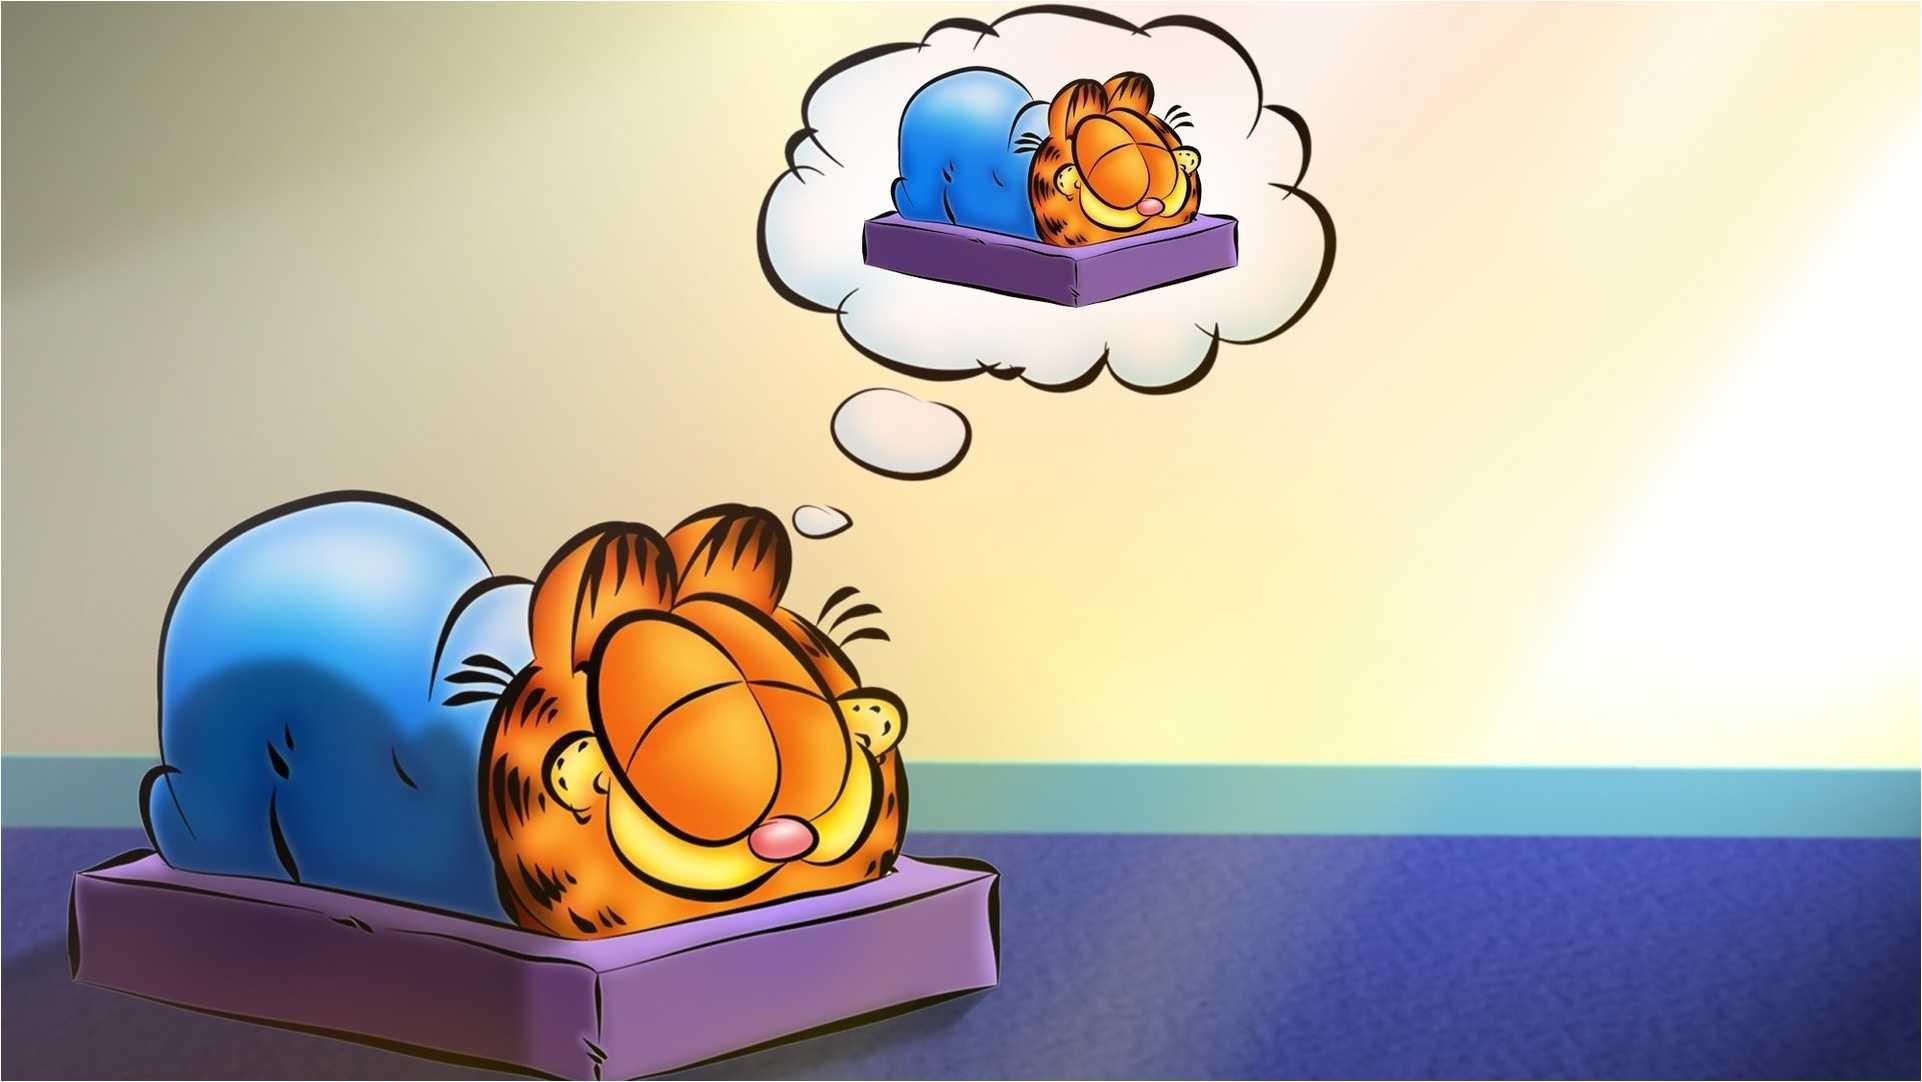 Res: 1922x1082, 62959904 Garfield Wallpapers | Garfield Backgrounds